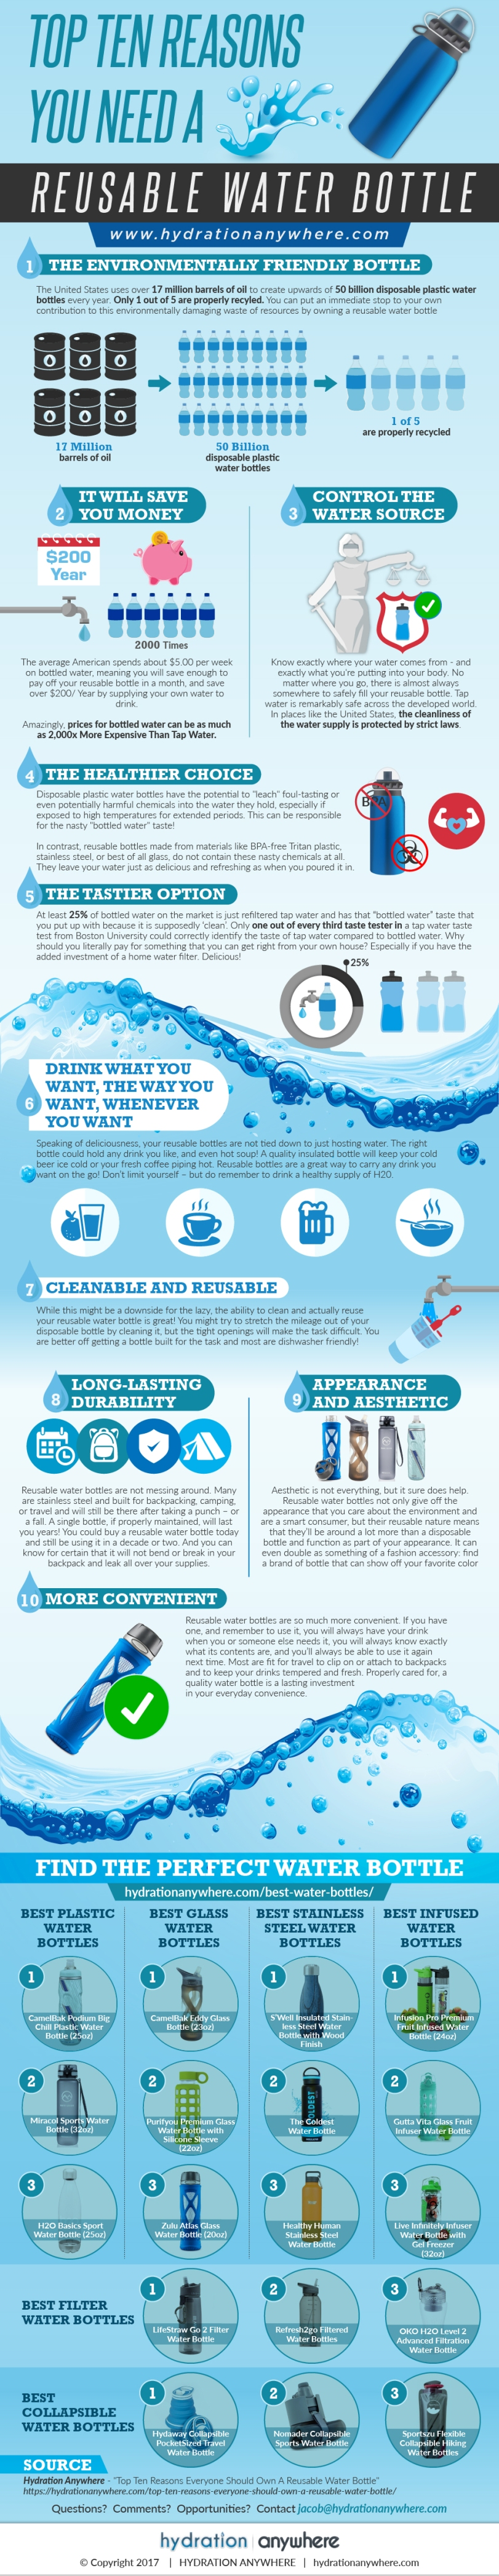 Top Ten Reasons You Need a Reusable Water Bottle by Hydration Anywhere